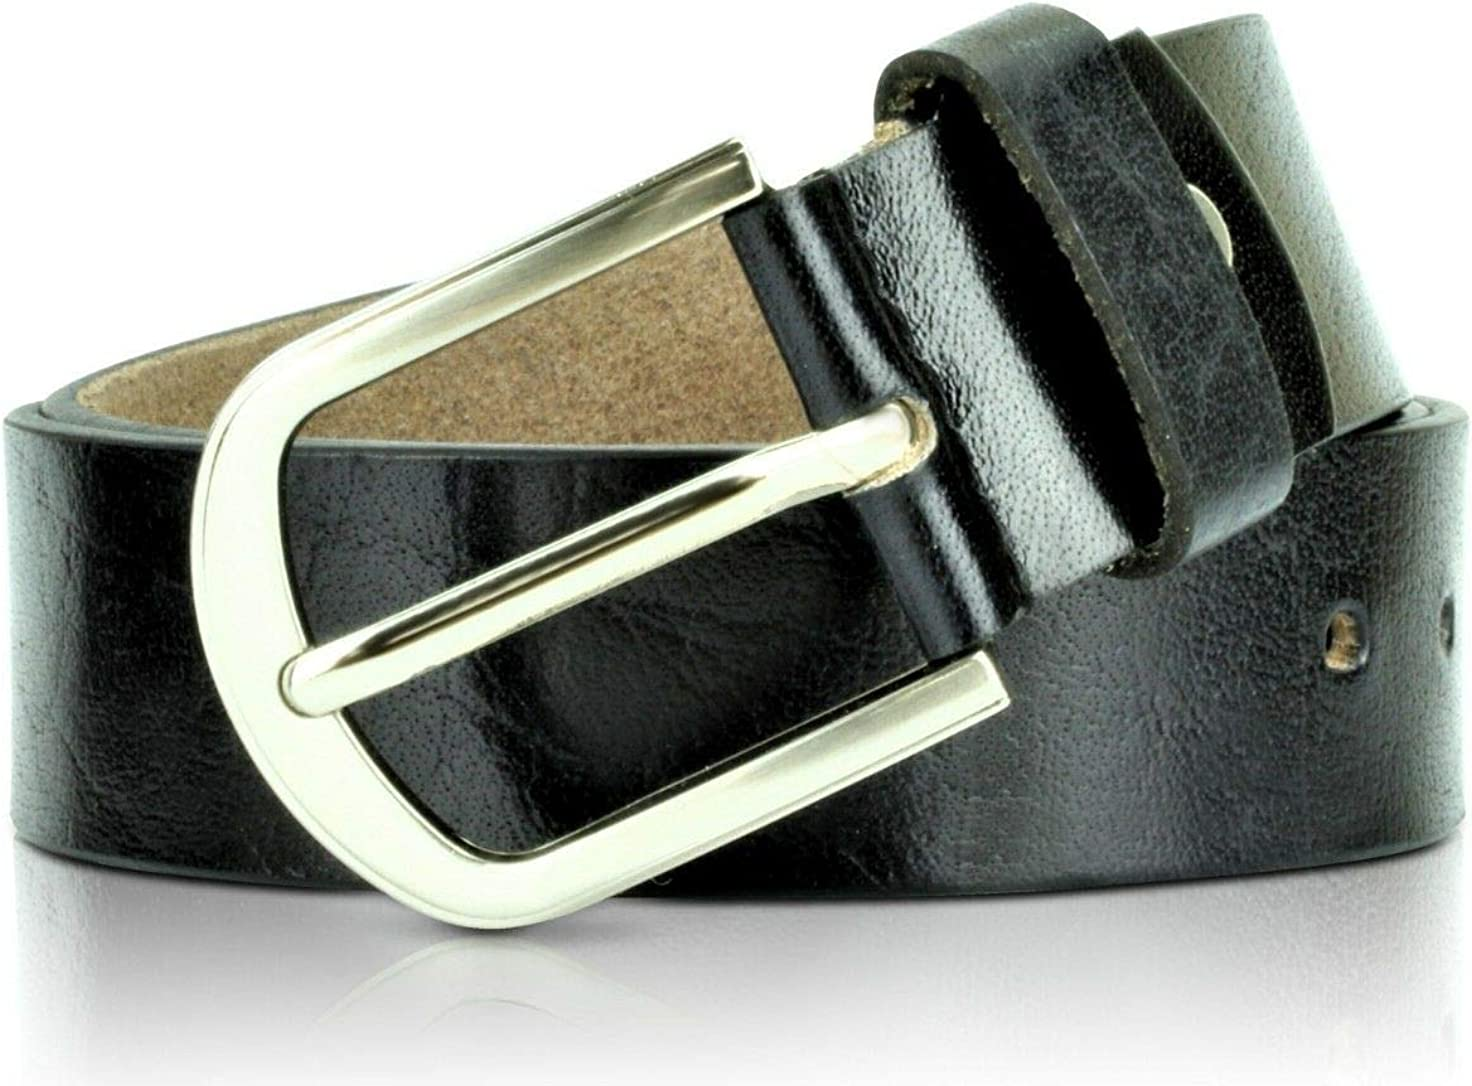 Berreri Mens Leather Belt With Pin Buckle 38mm For Jeans